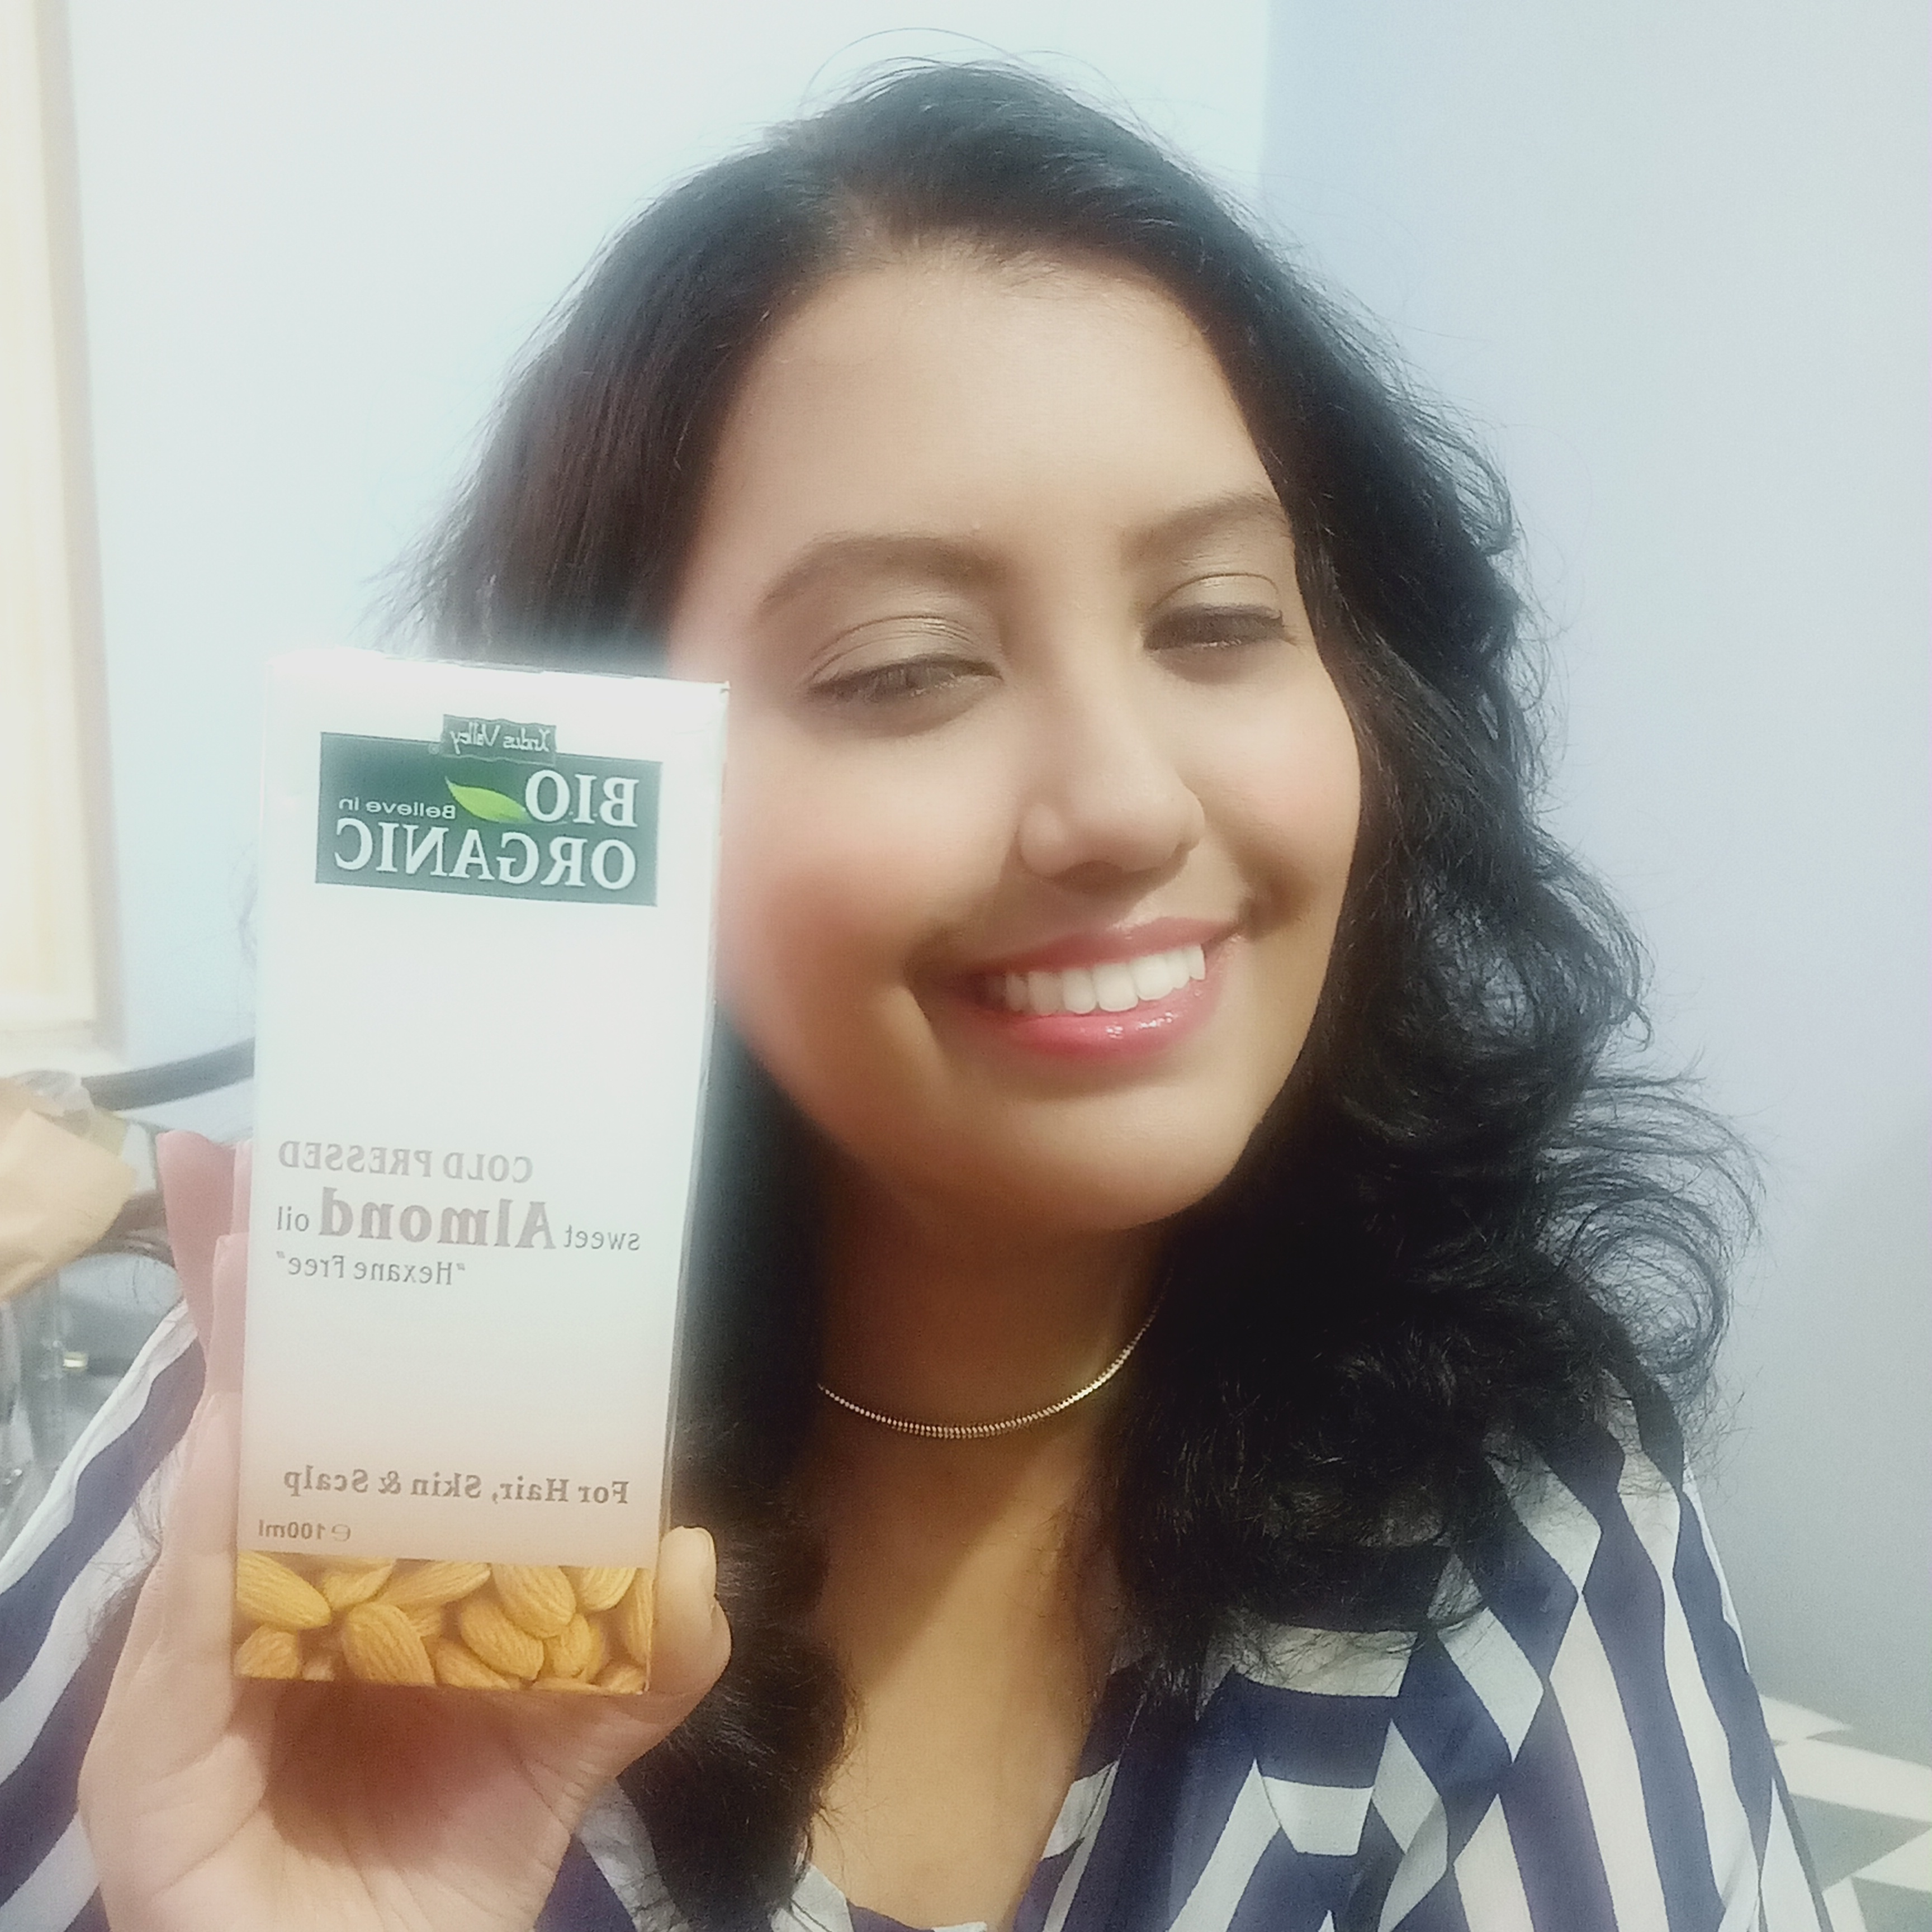 Indus Valley Cold Pressed Sweet Almond Oil-Affordable and keeps the skin fresh-By priyanka_bhosle-2